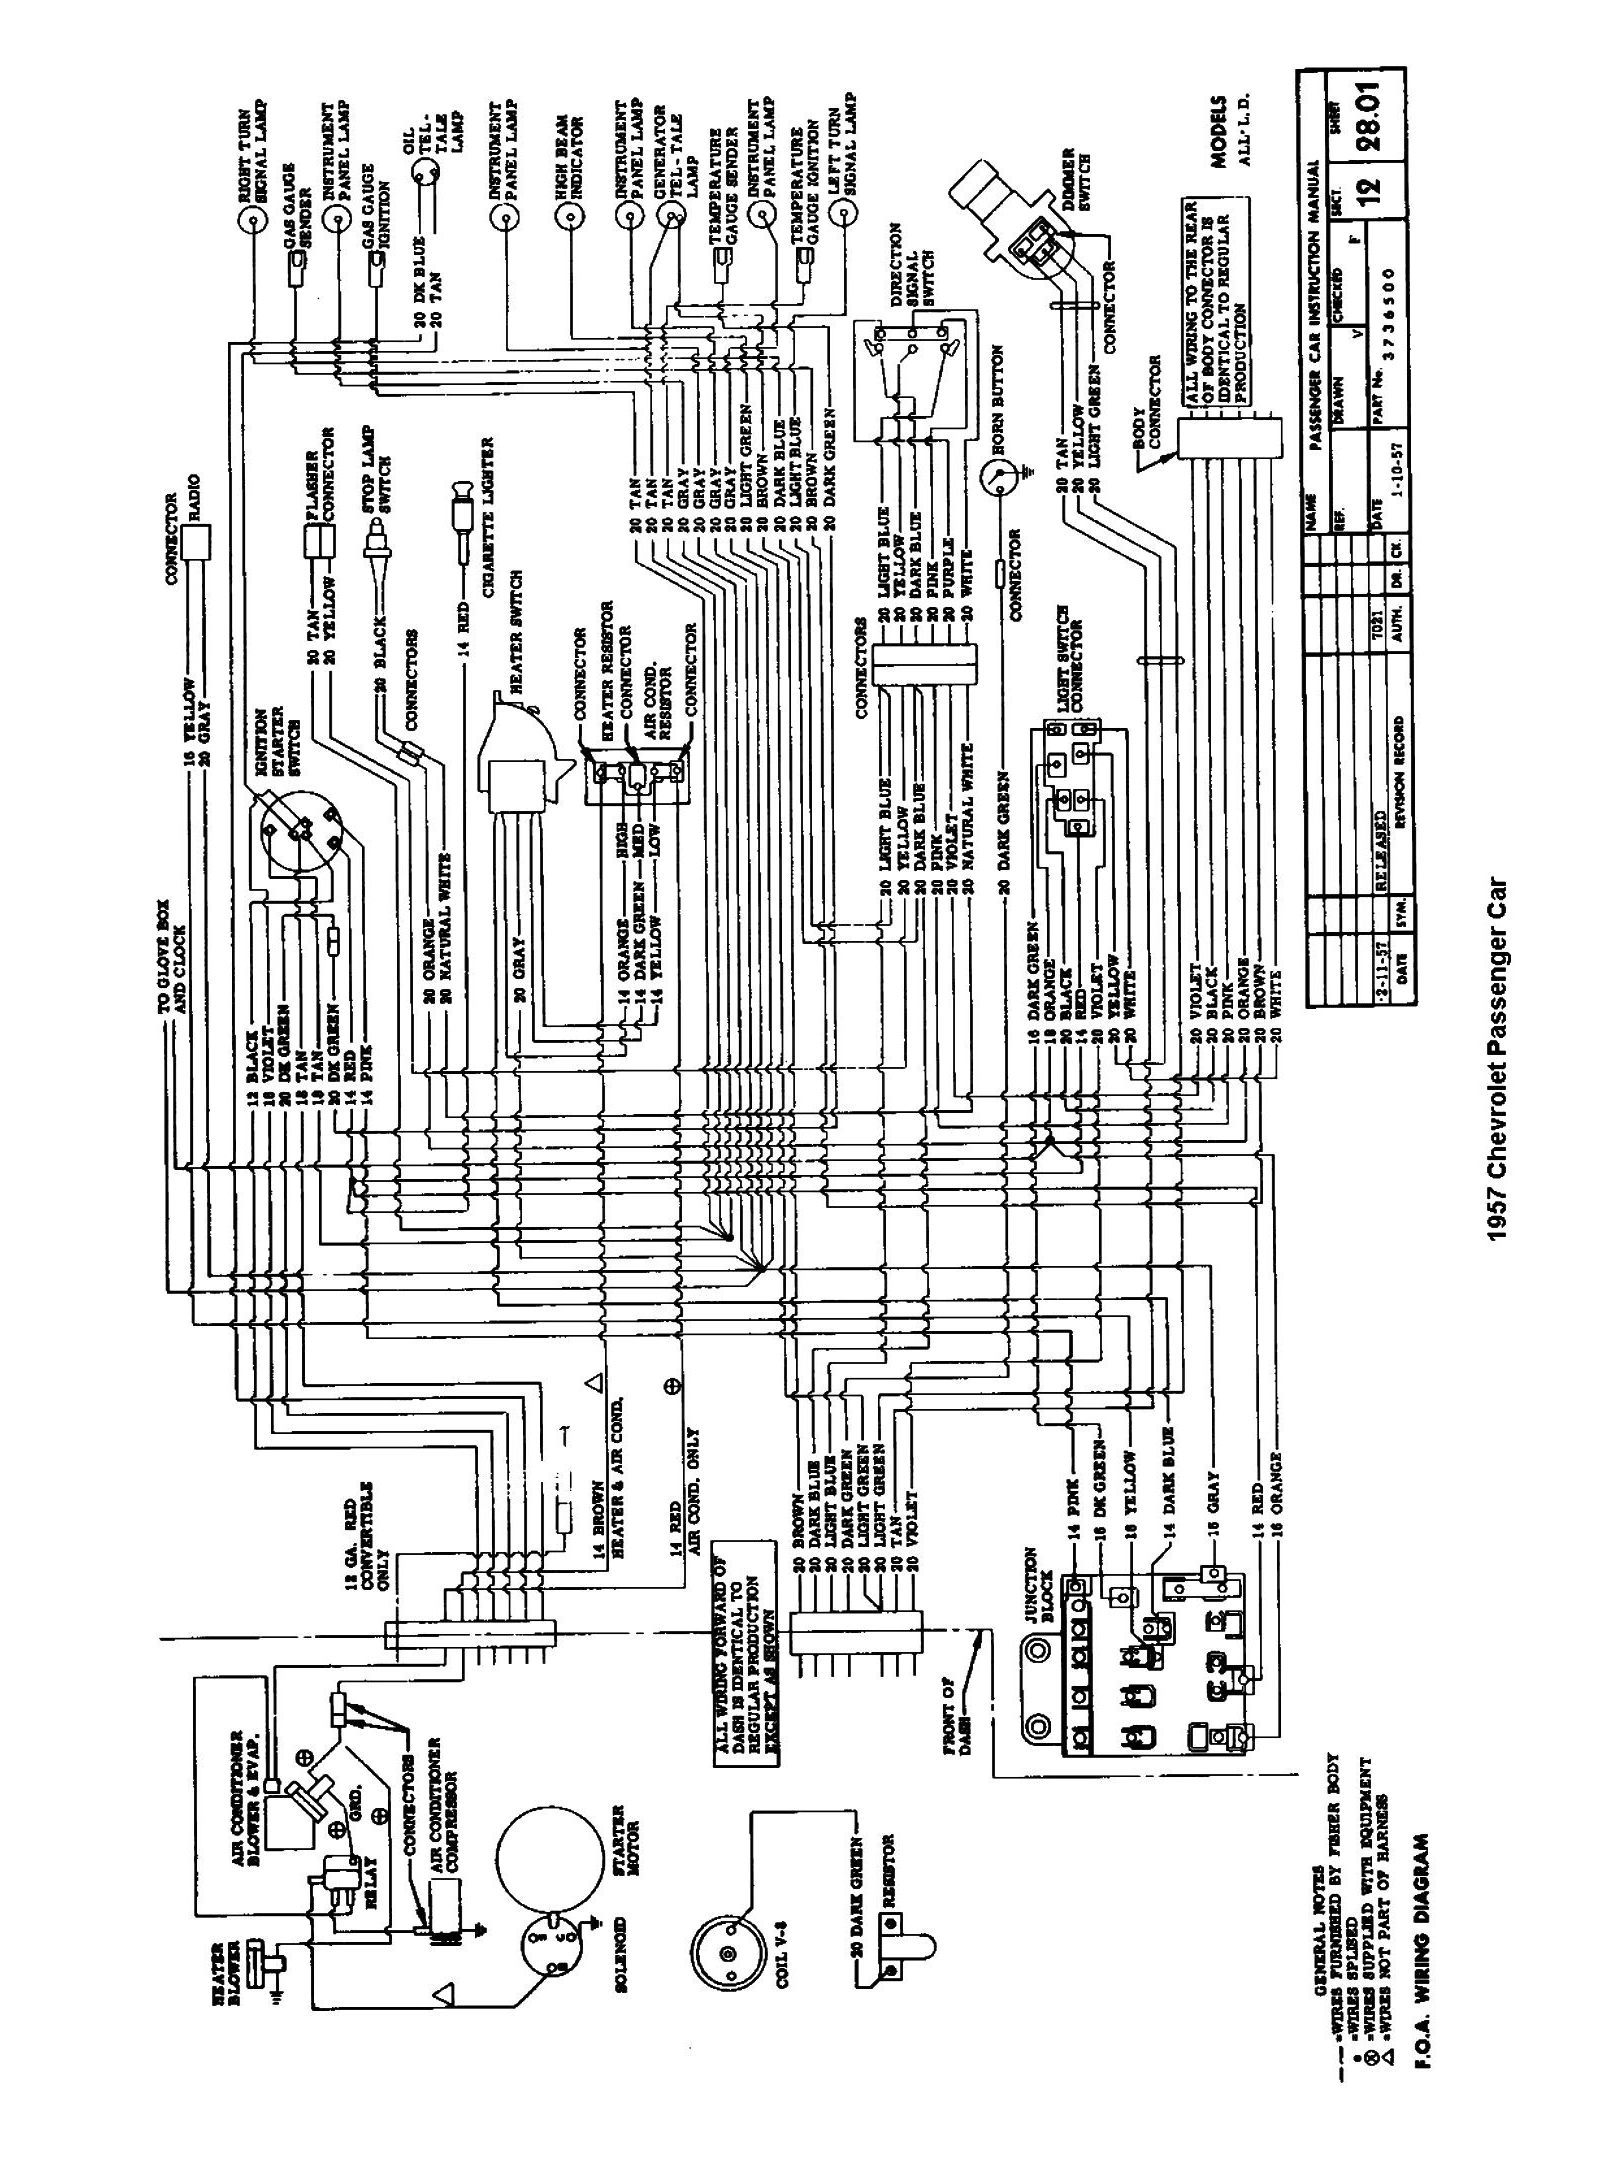 57car2 chevy wiring diagrams chevrolet wiring diagram at mifinder.co